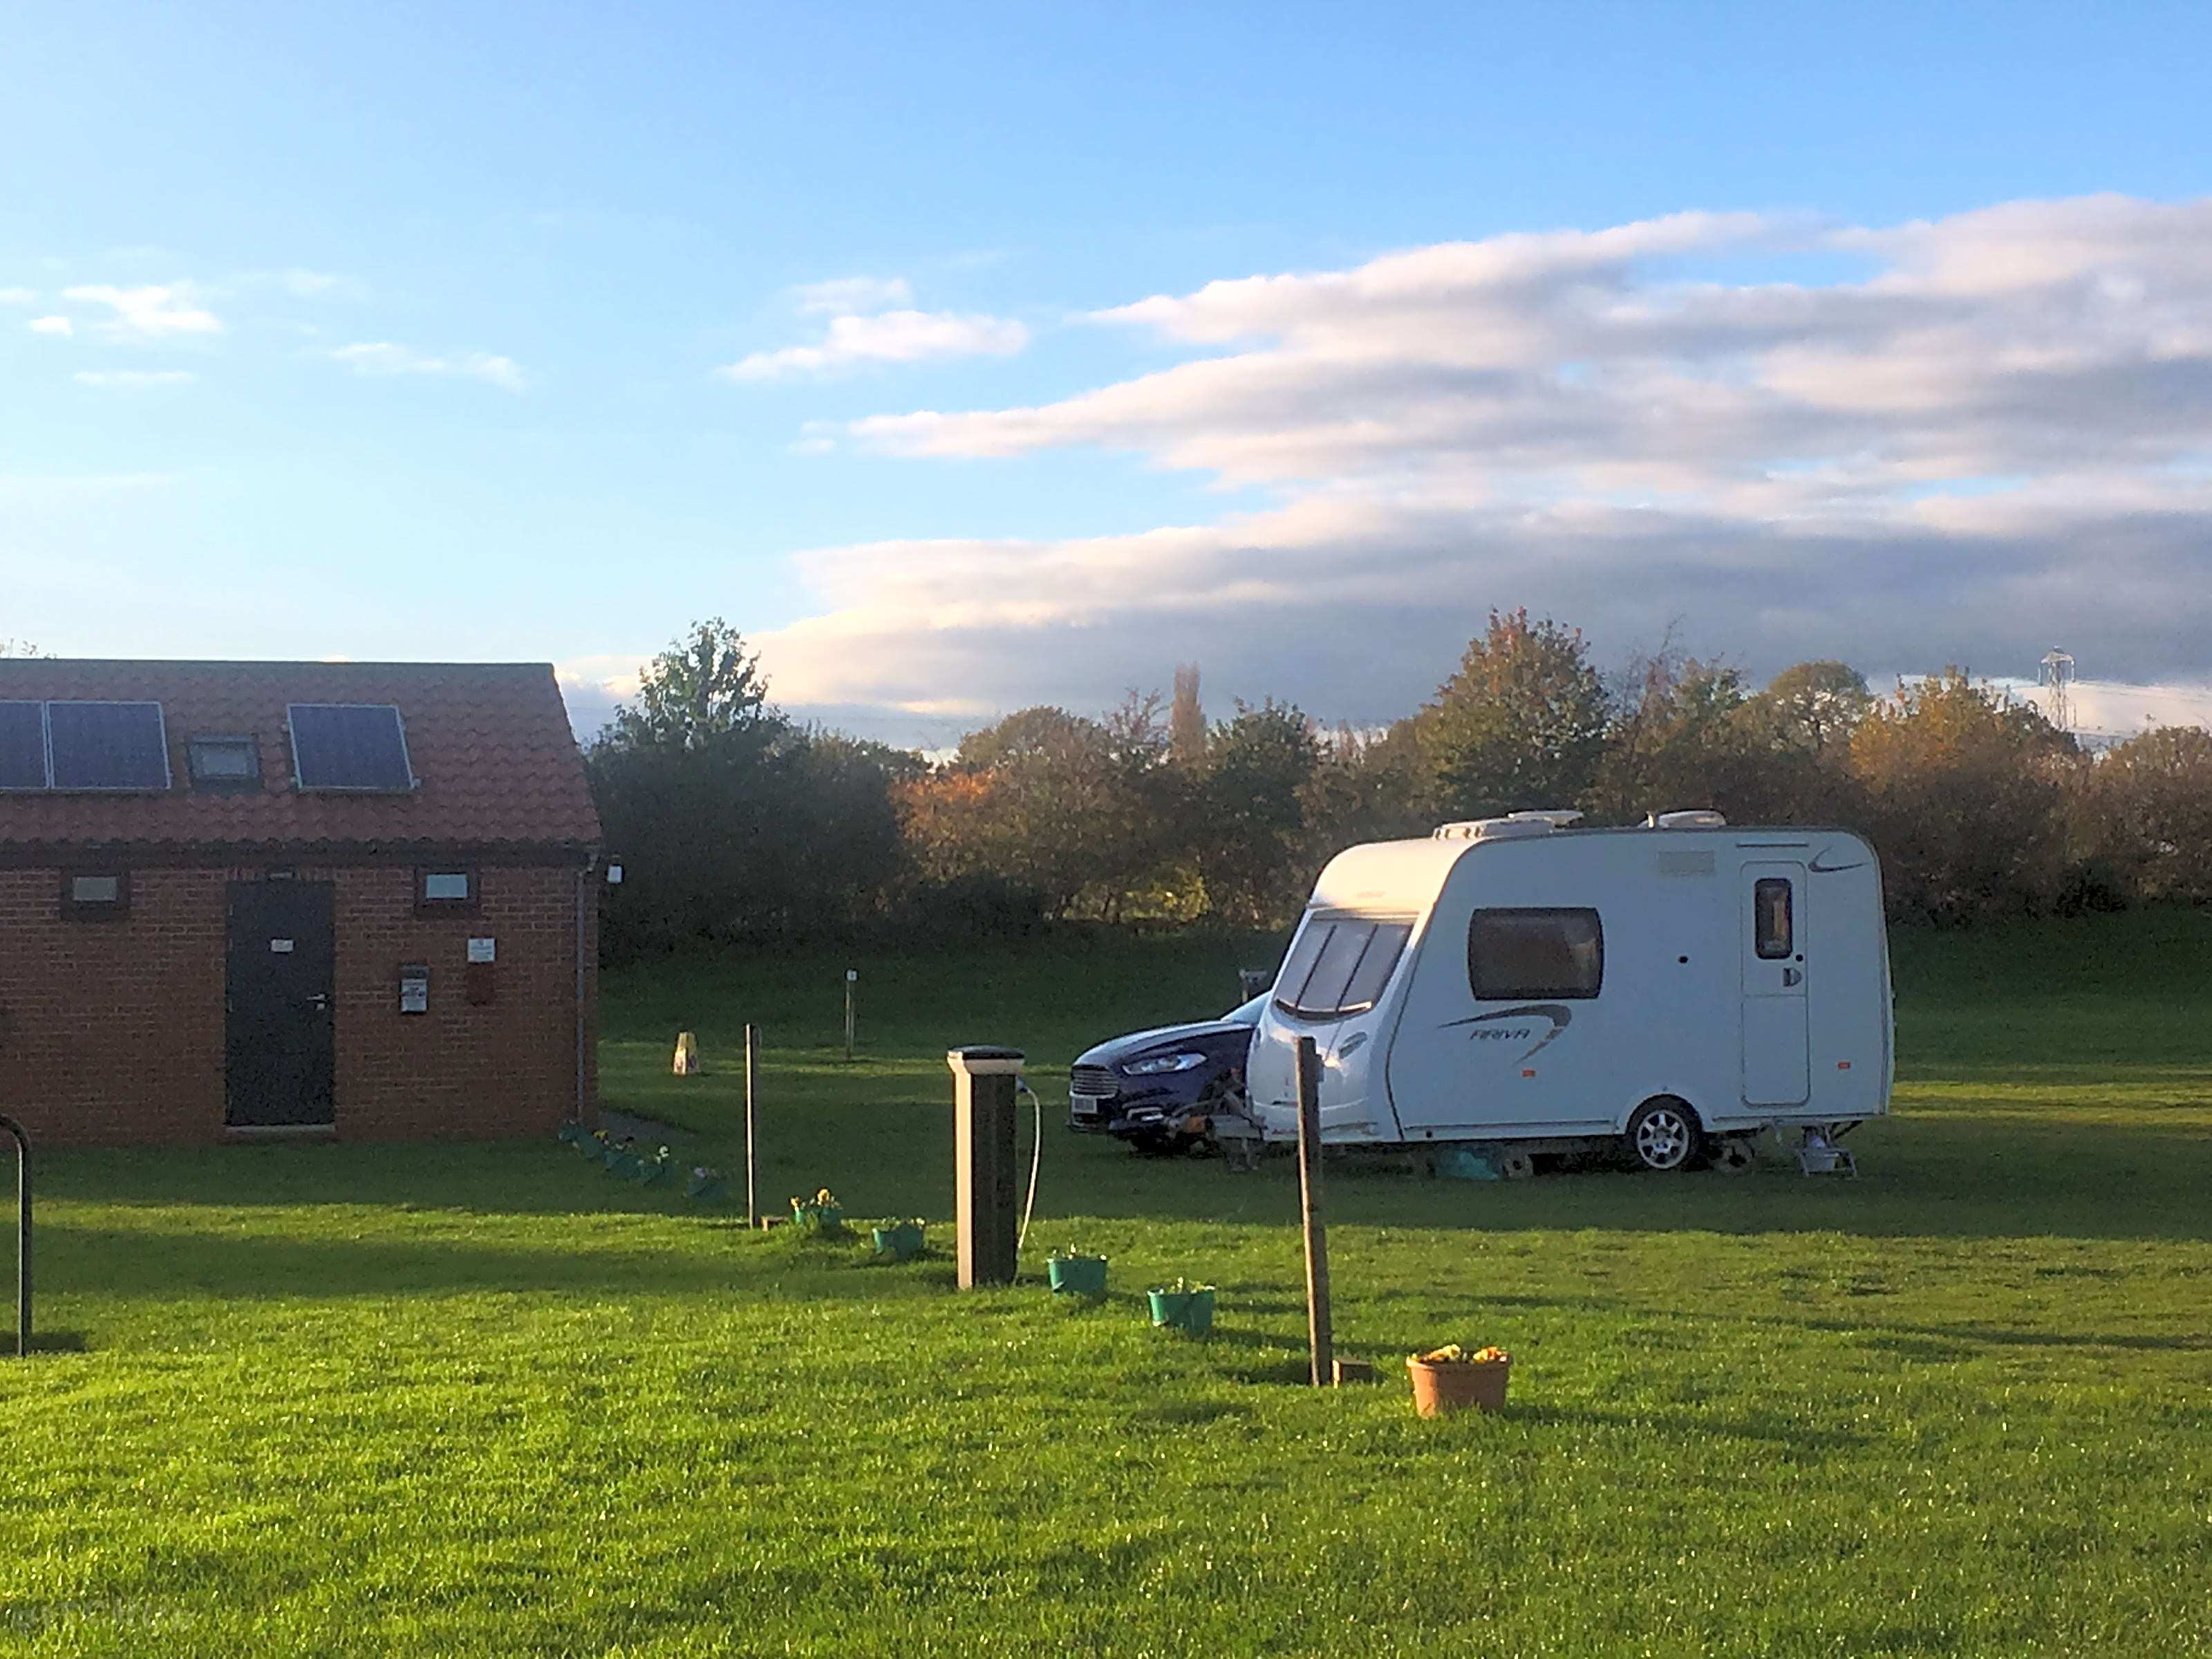 Wagtail Park, York - Updated 2019 prices - Pitchup®